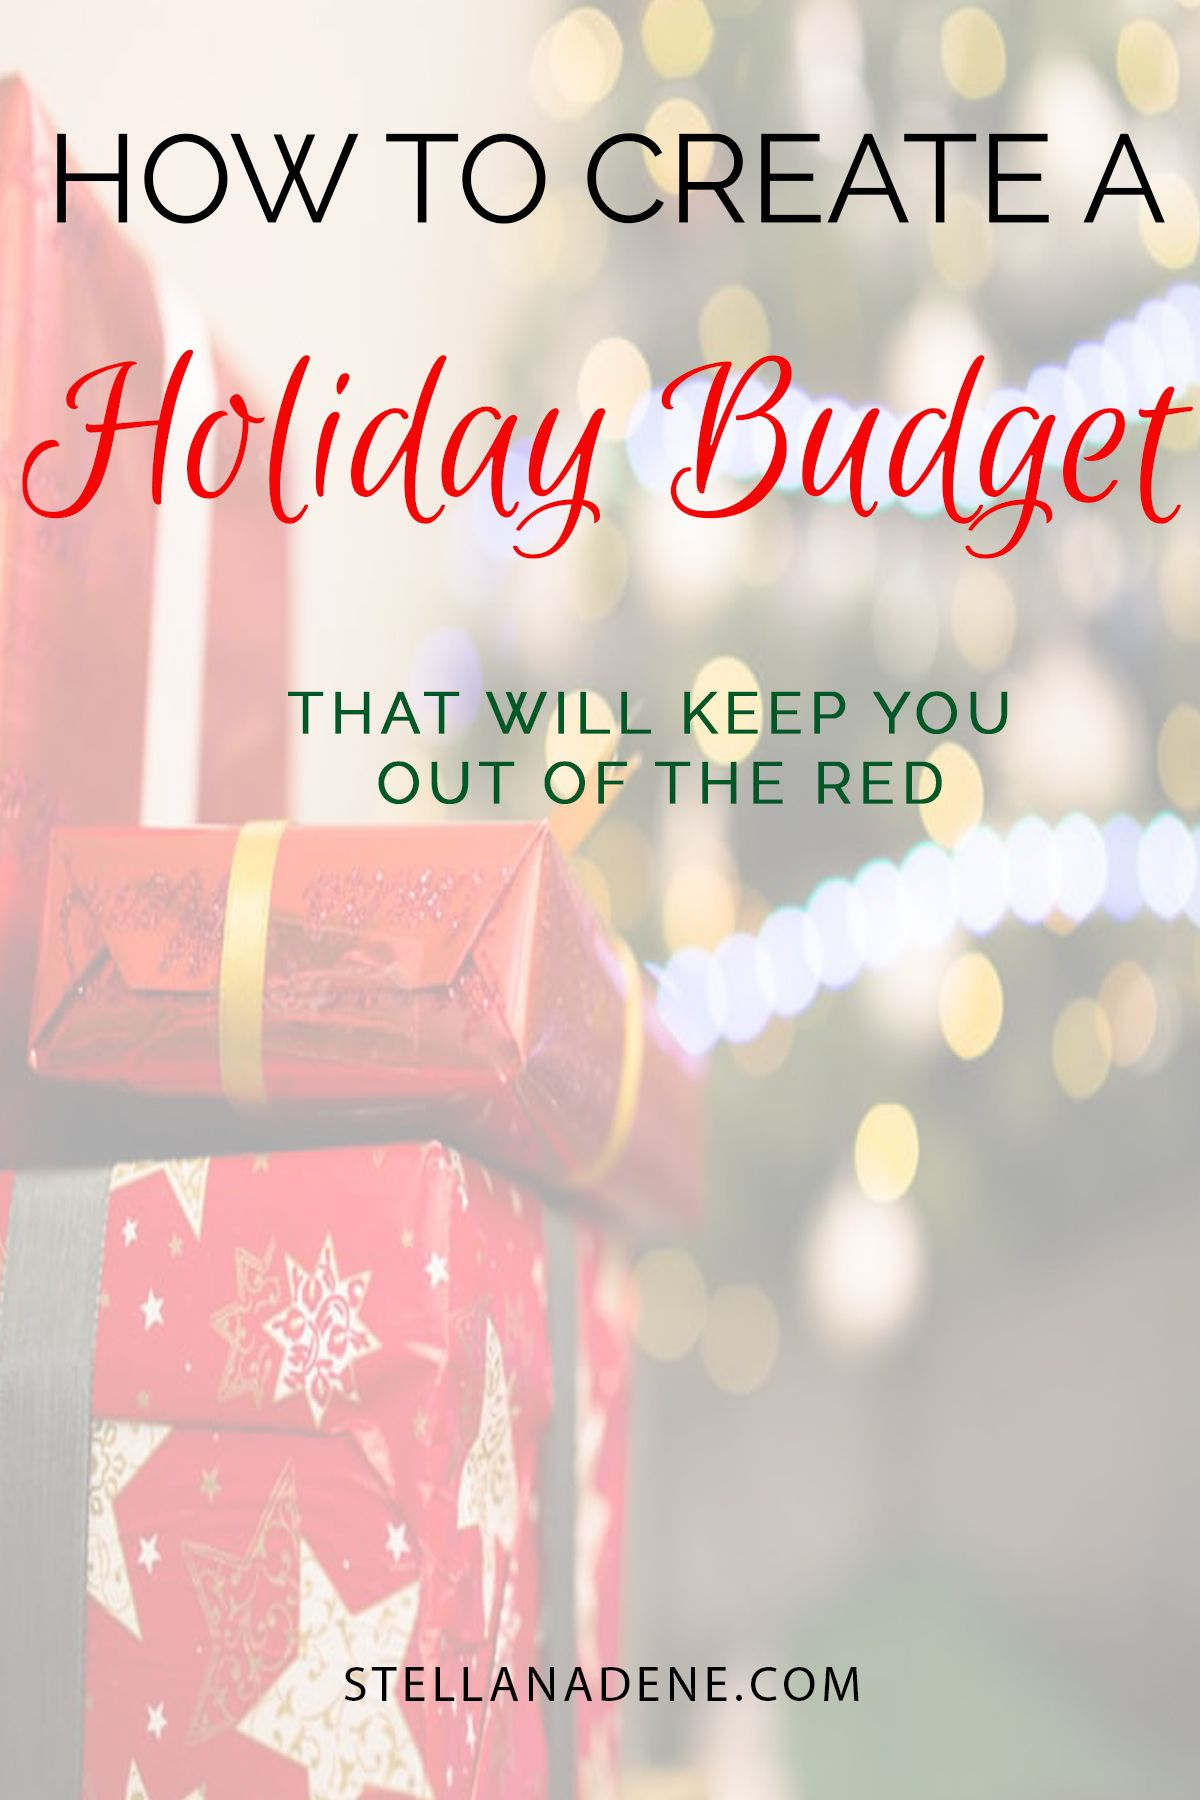 how to create a holiday budget that will keep you out of the red